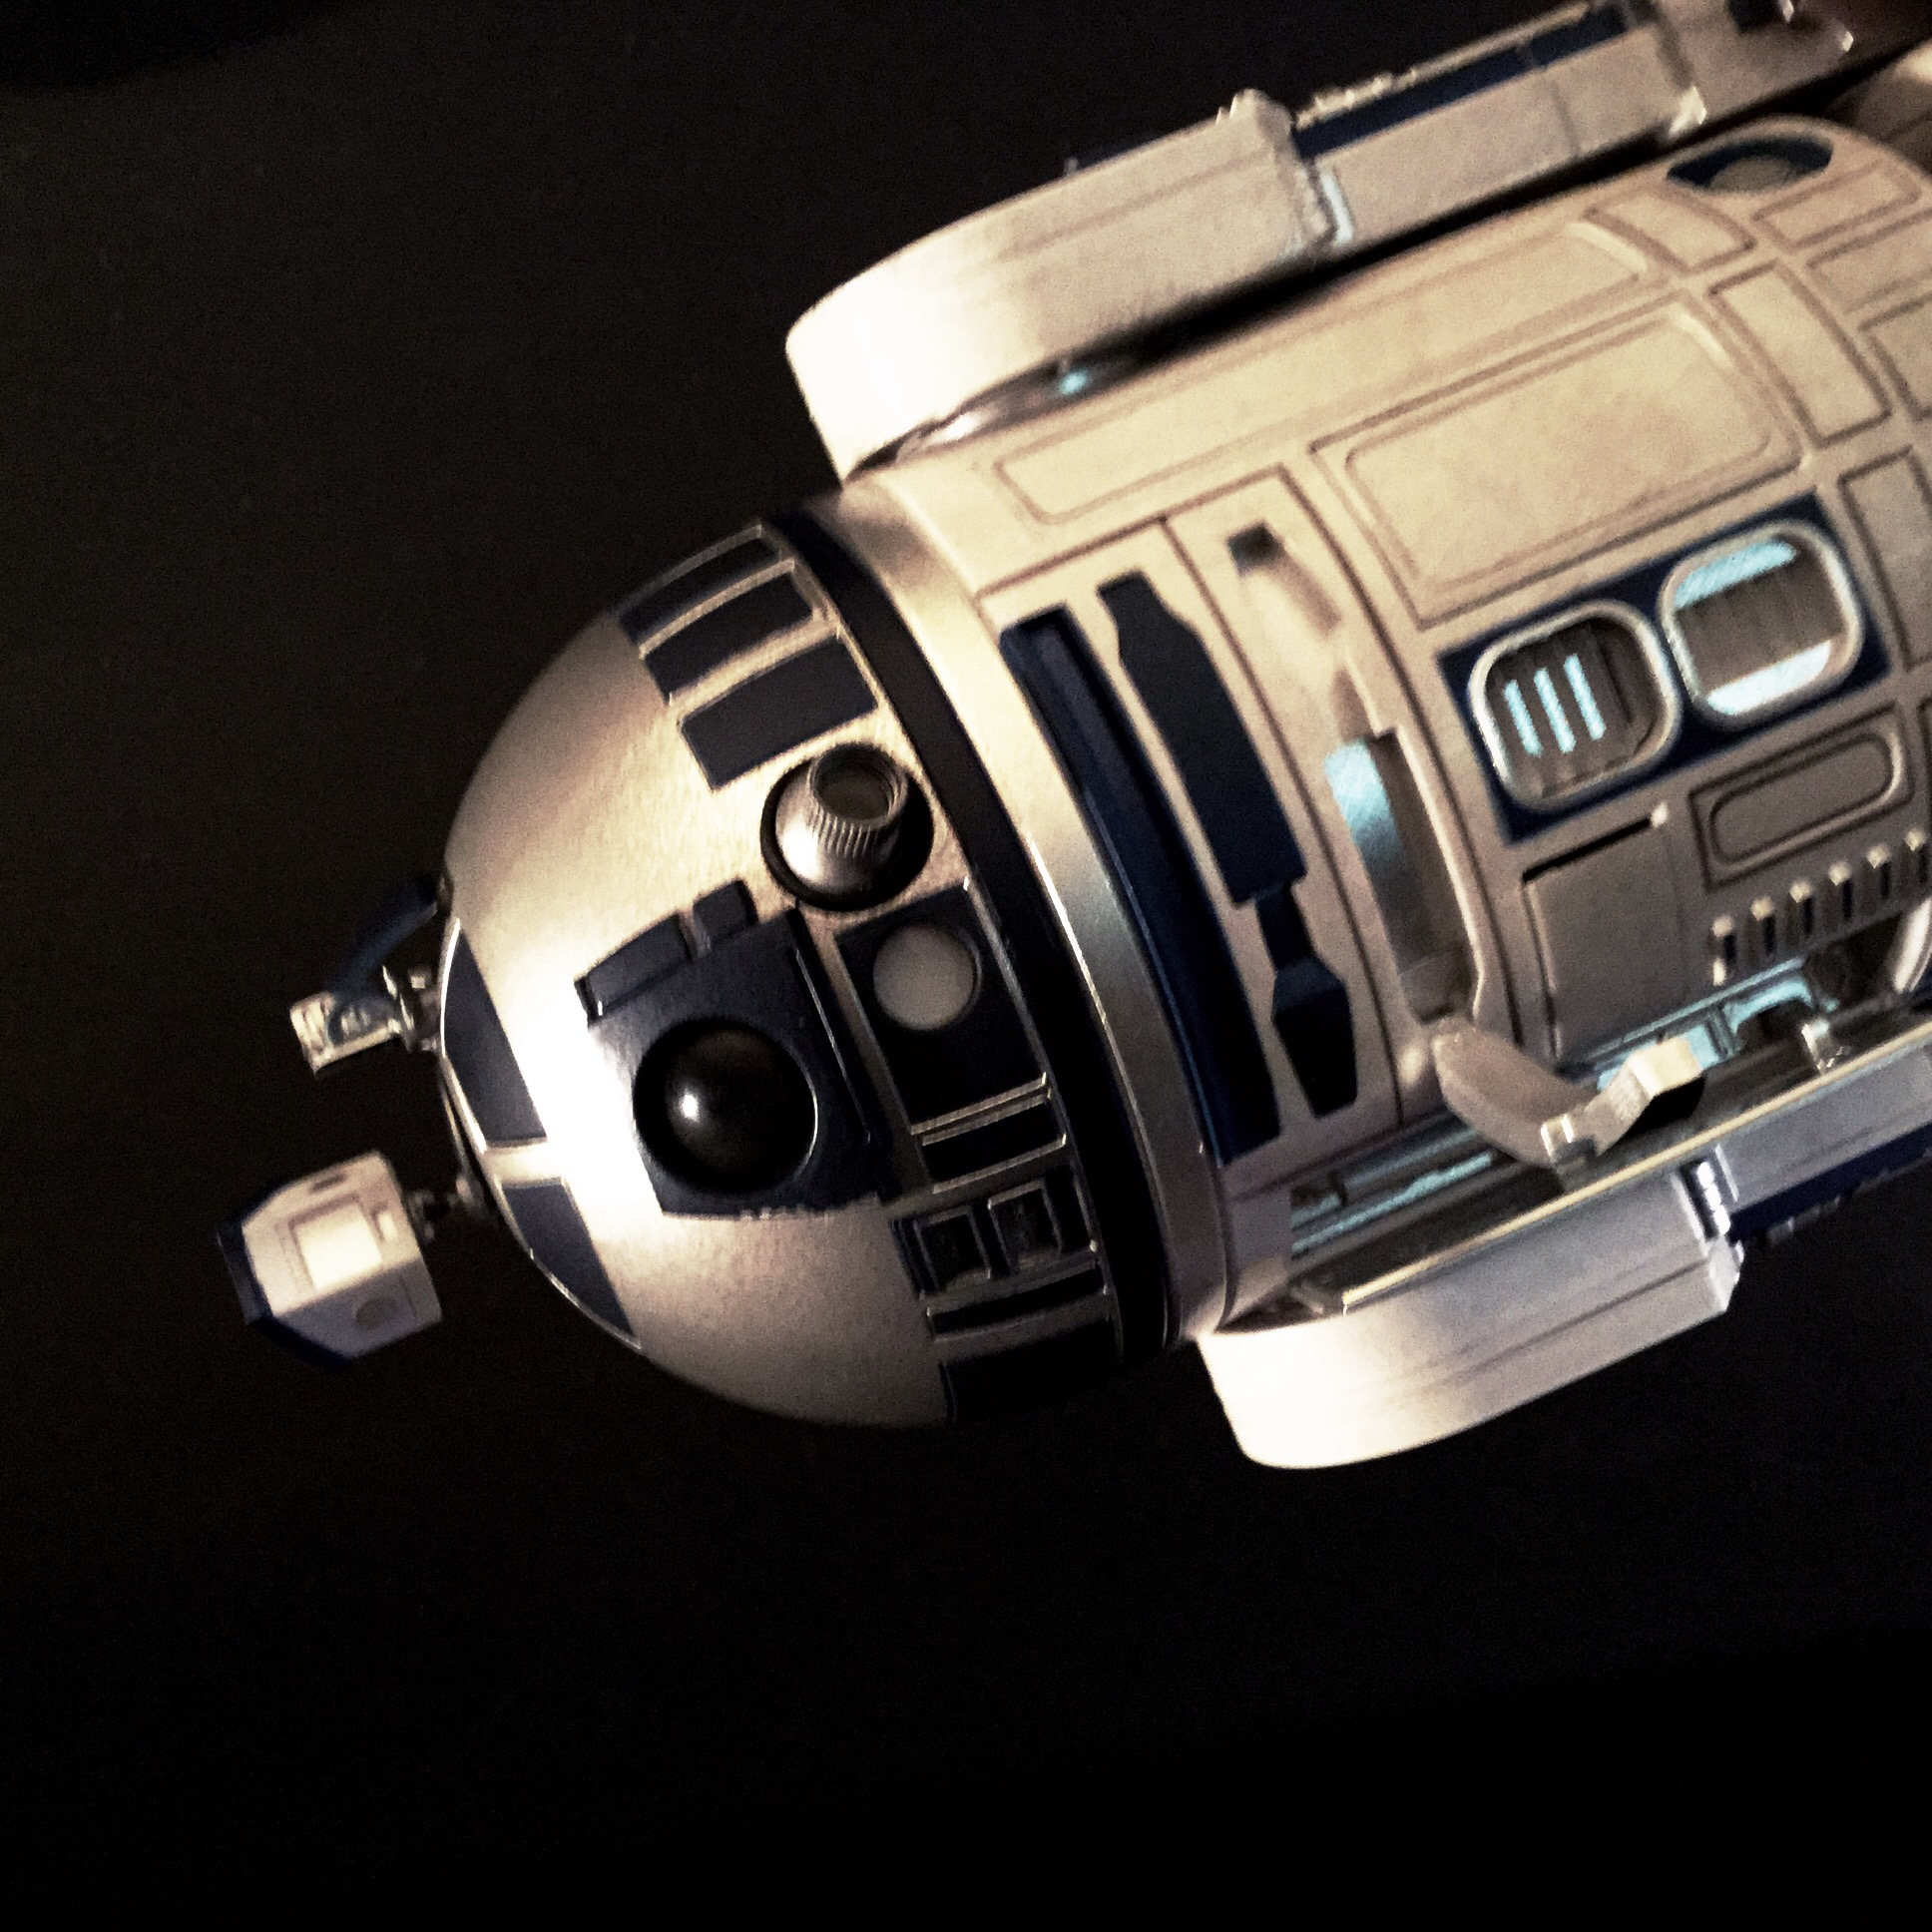 [REVIEW] Star Wars : R2-D2 Deluxe (Sideshow) 16443107622_a0ae74a850_o